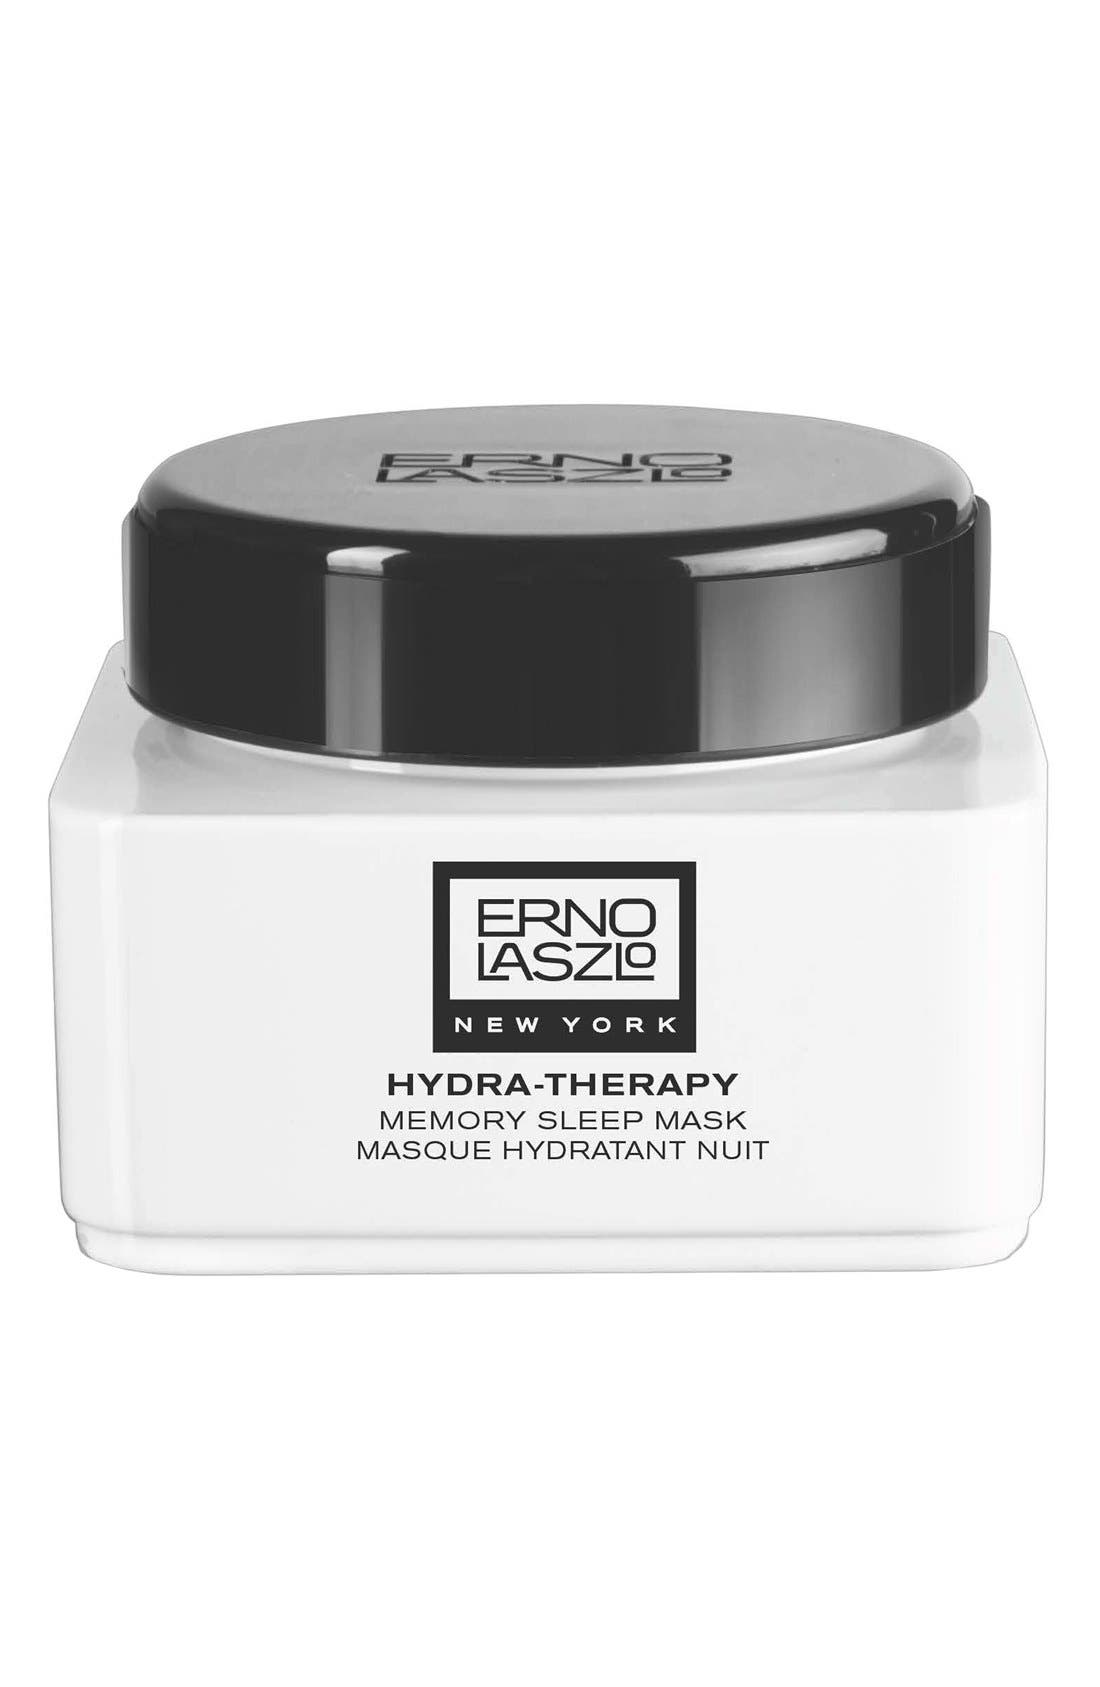 Erno Laszlo 'Hydra-Therapy' Memory Sleep Mask